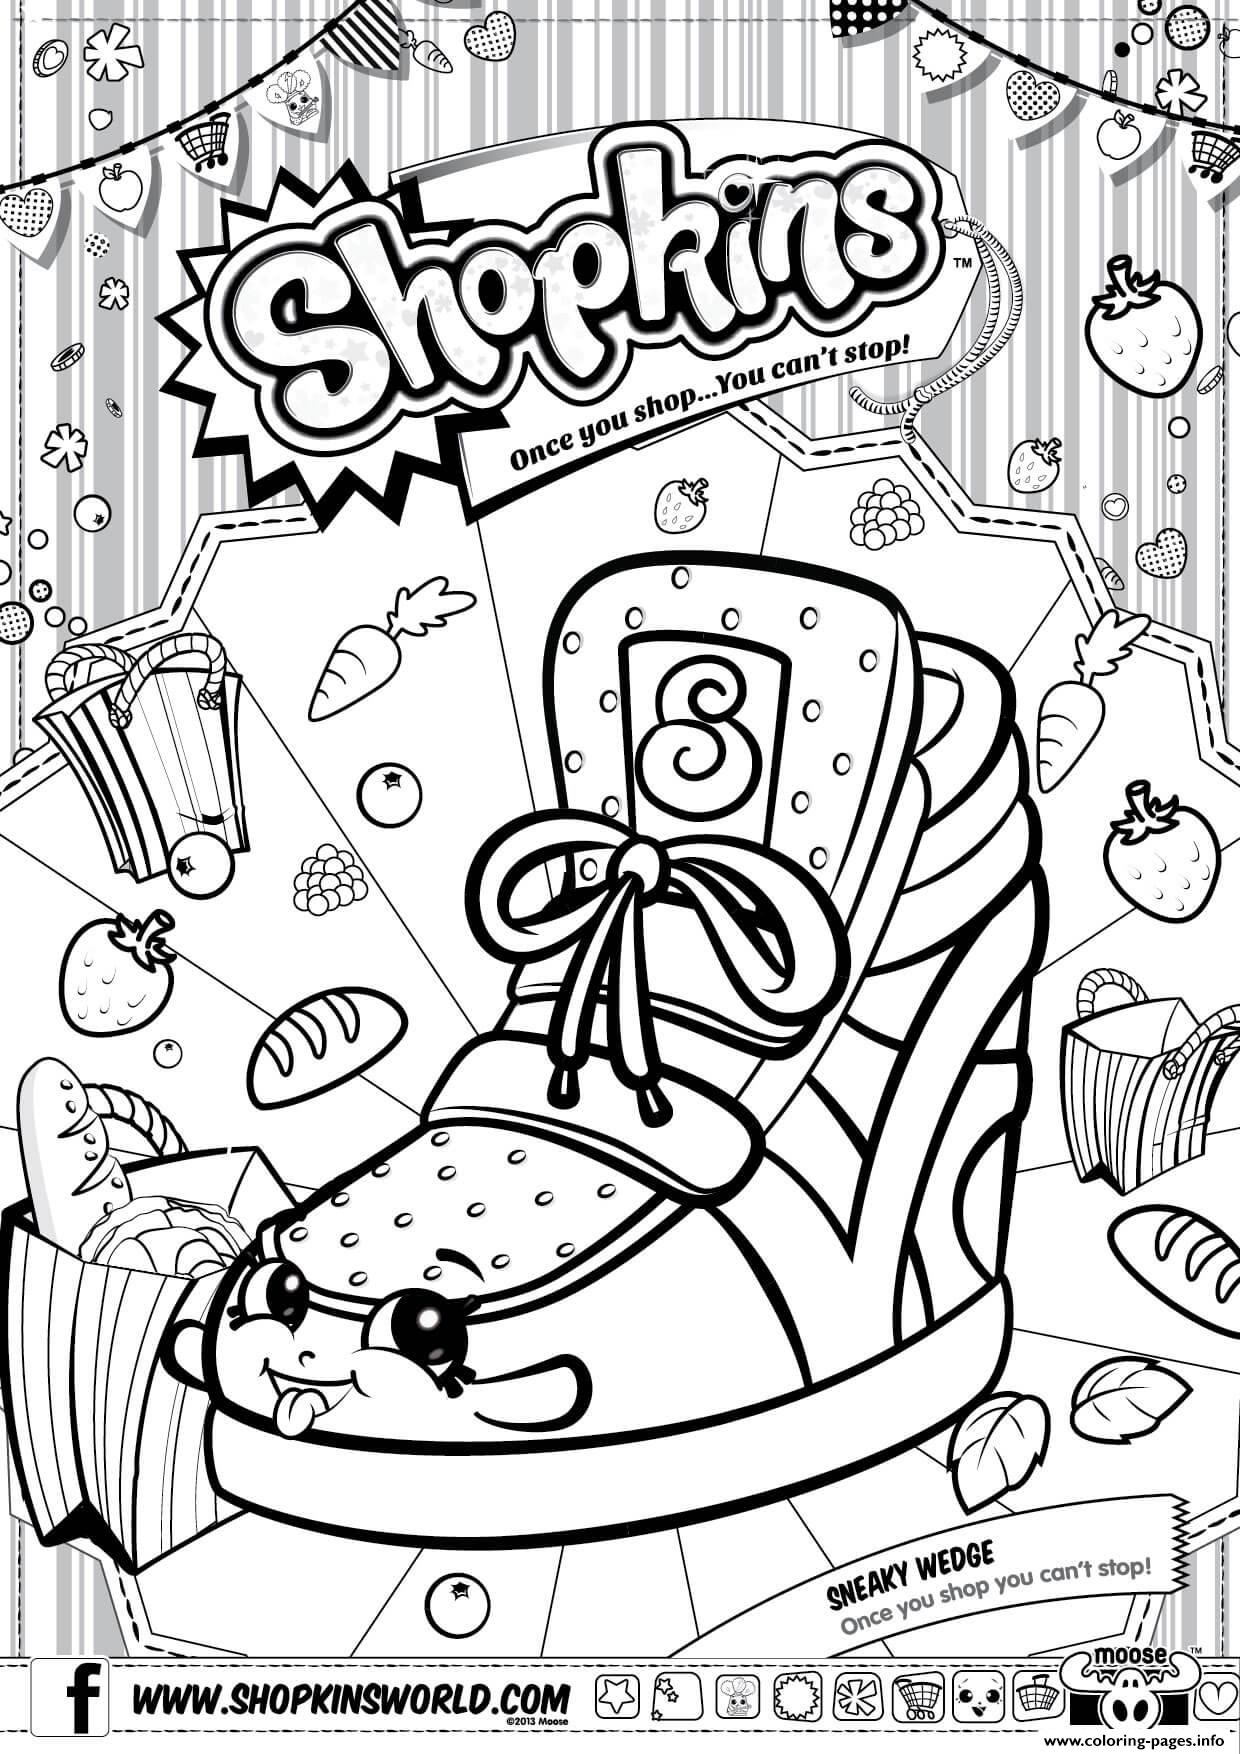 Shopkins Sneaky Wedge Coloring Pages Print Download 373 Prints